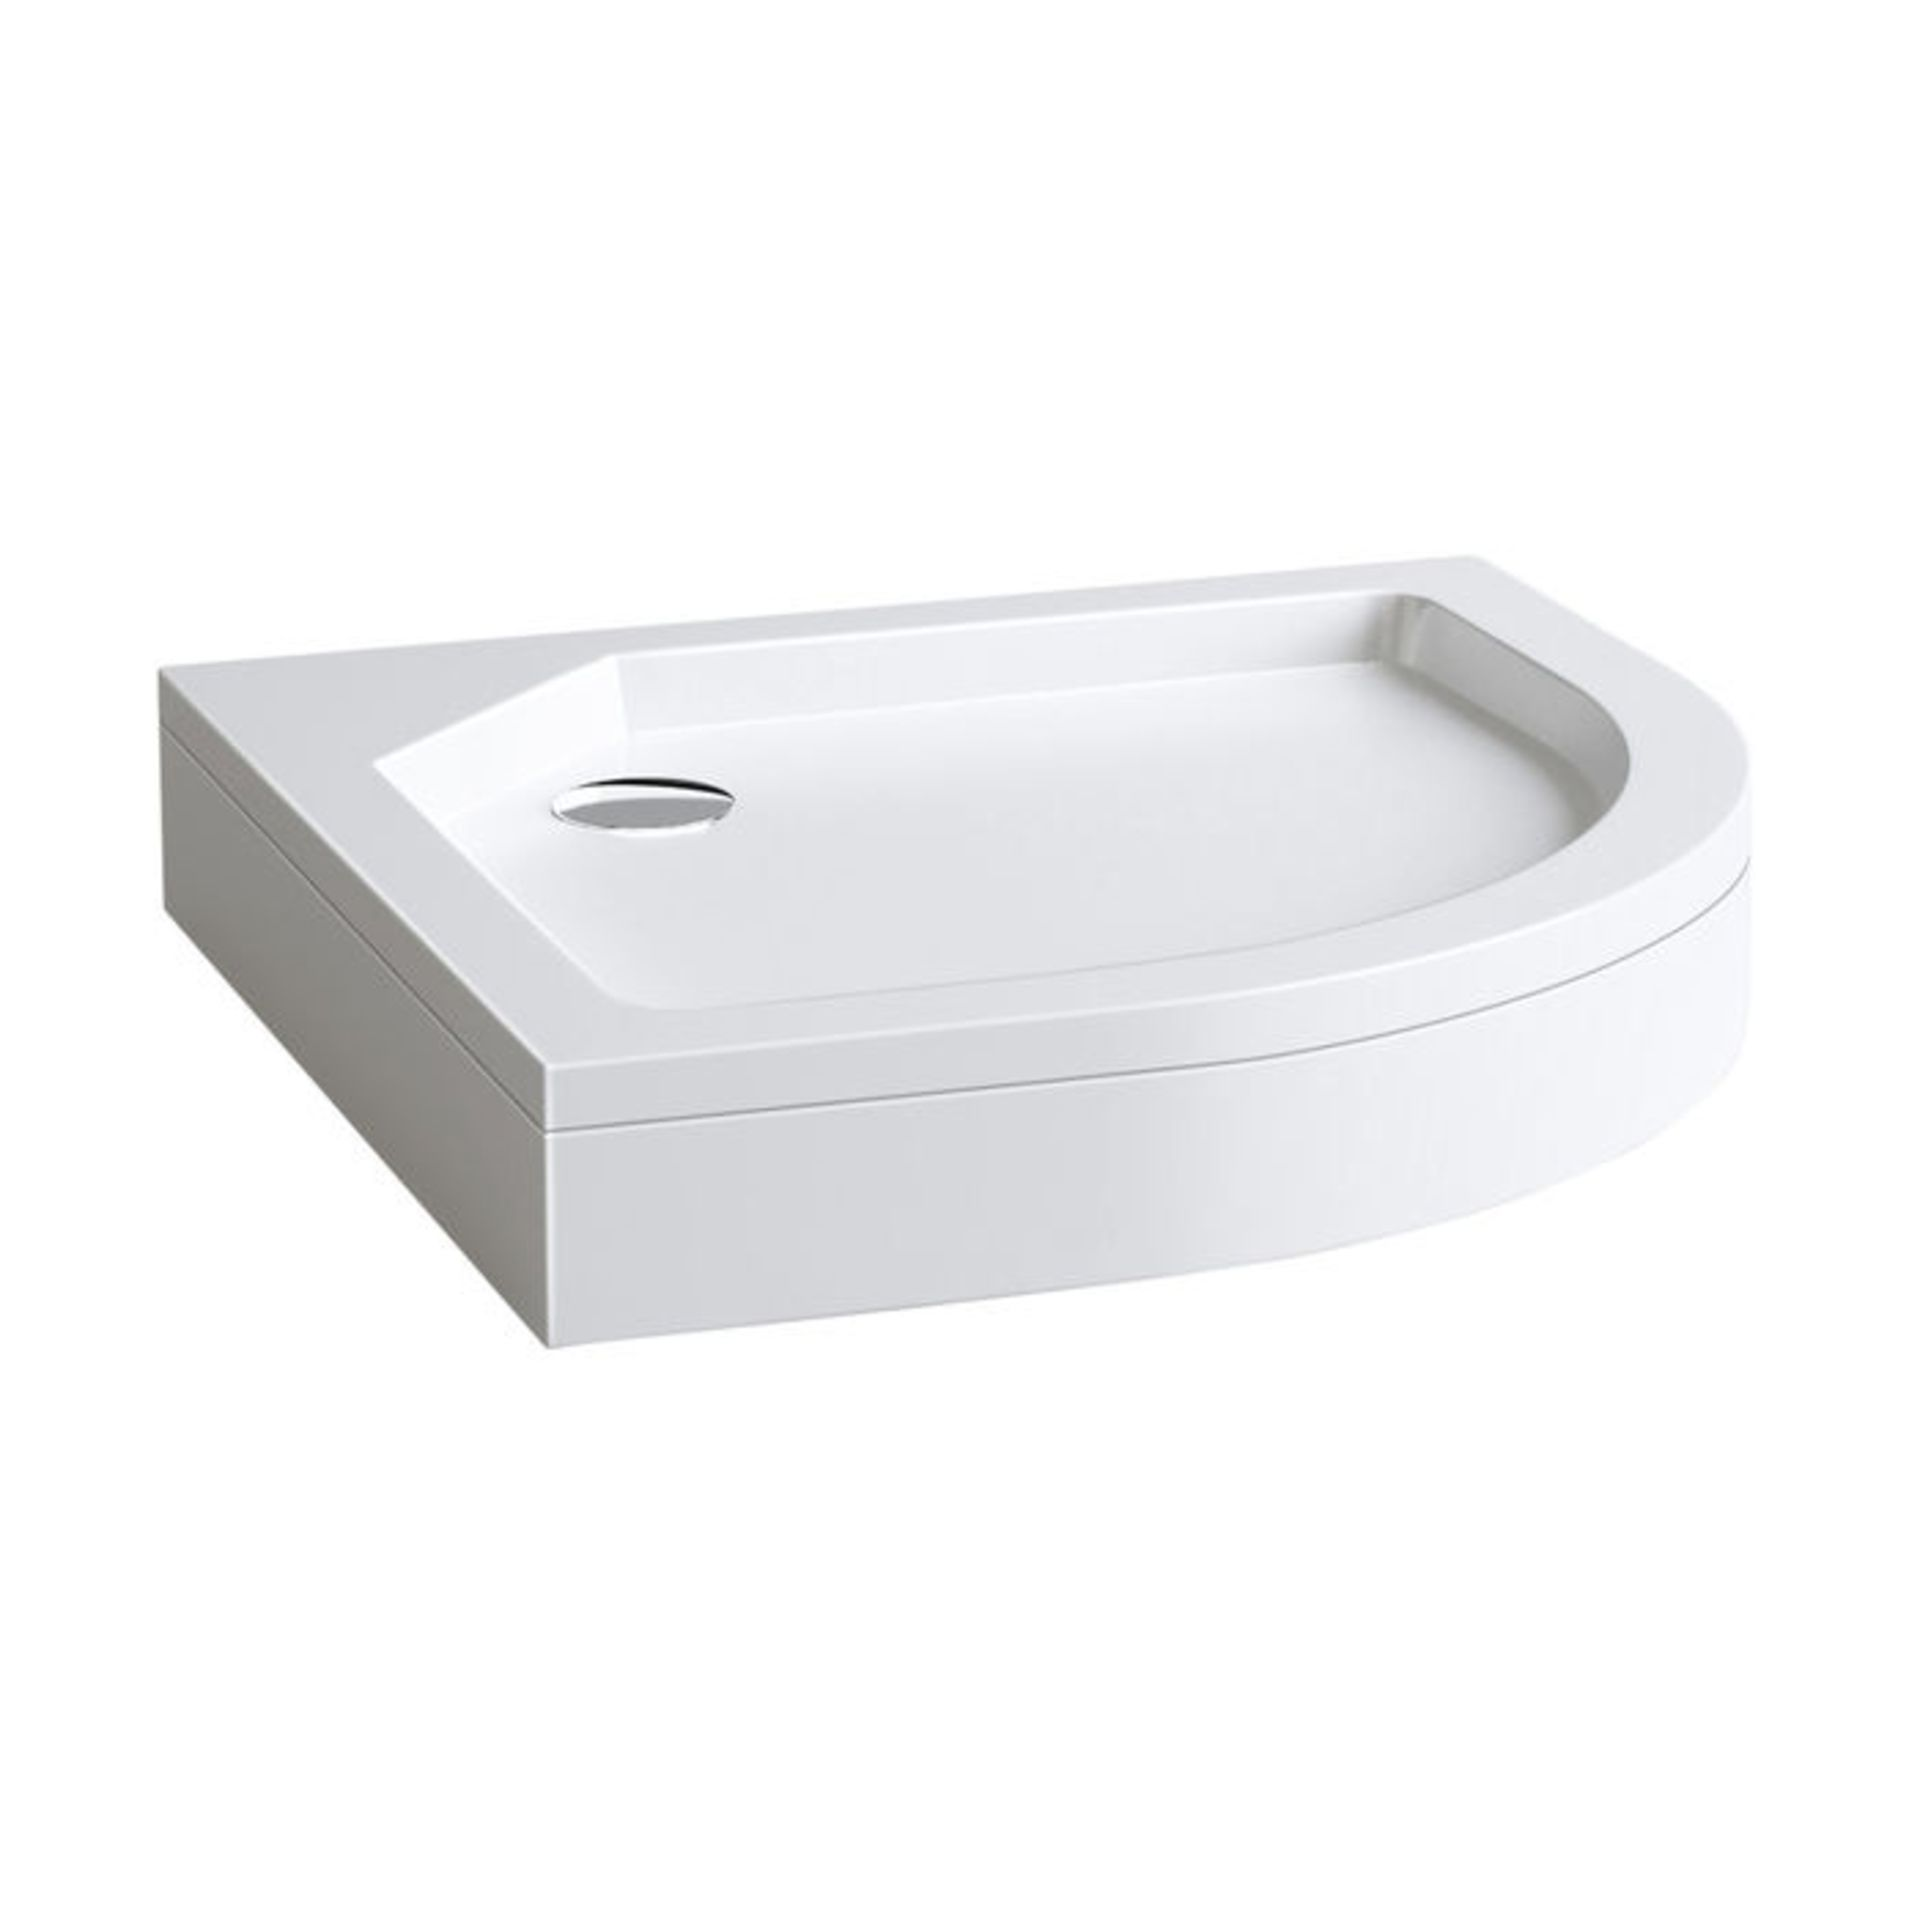 Lot 514 - (NY185) 800x800mm Quadrant Easy Plumb Shower Tray. Easy to clean waste container Made from